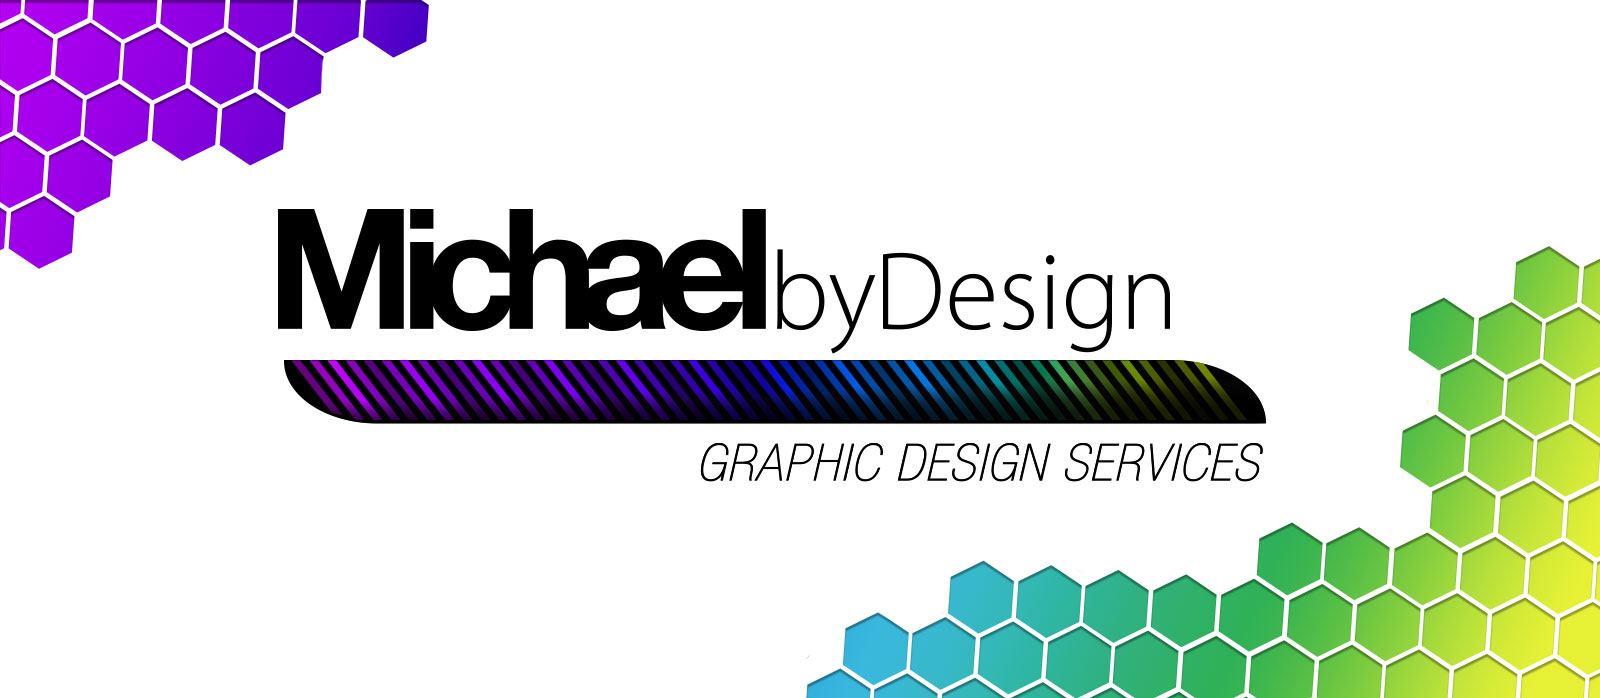 Michael by Design, Graphic Design Services